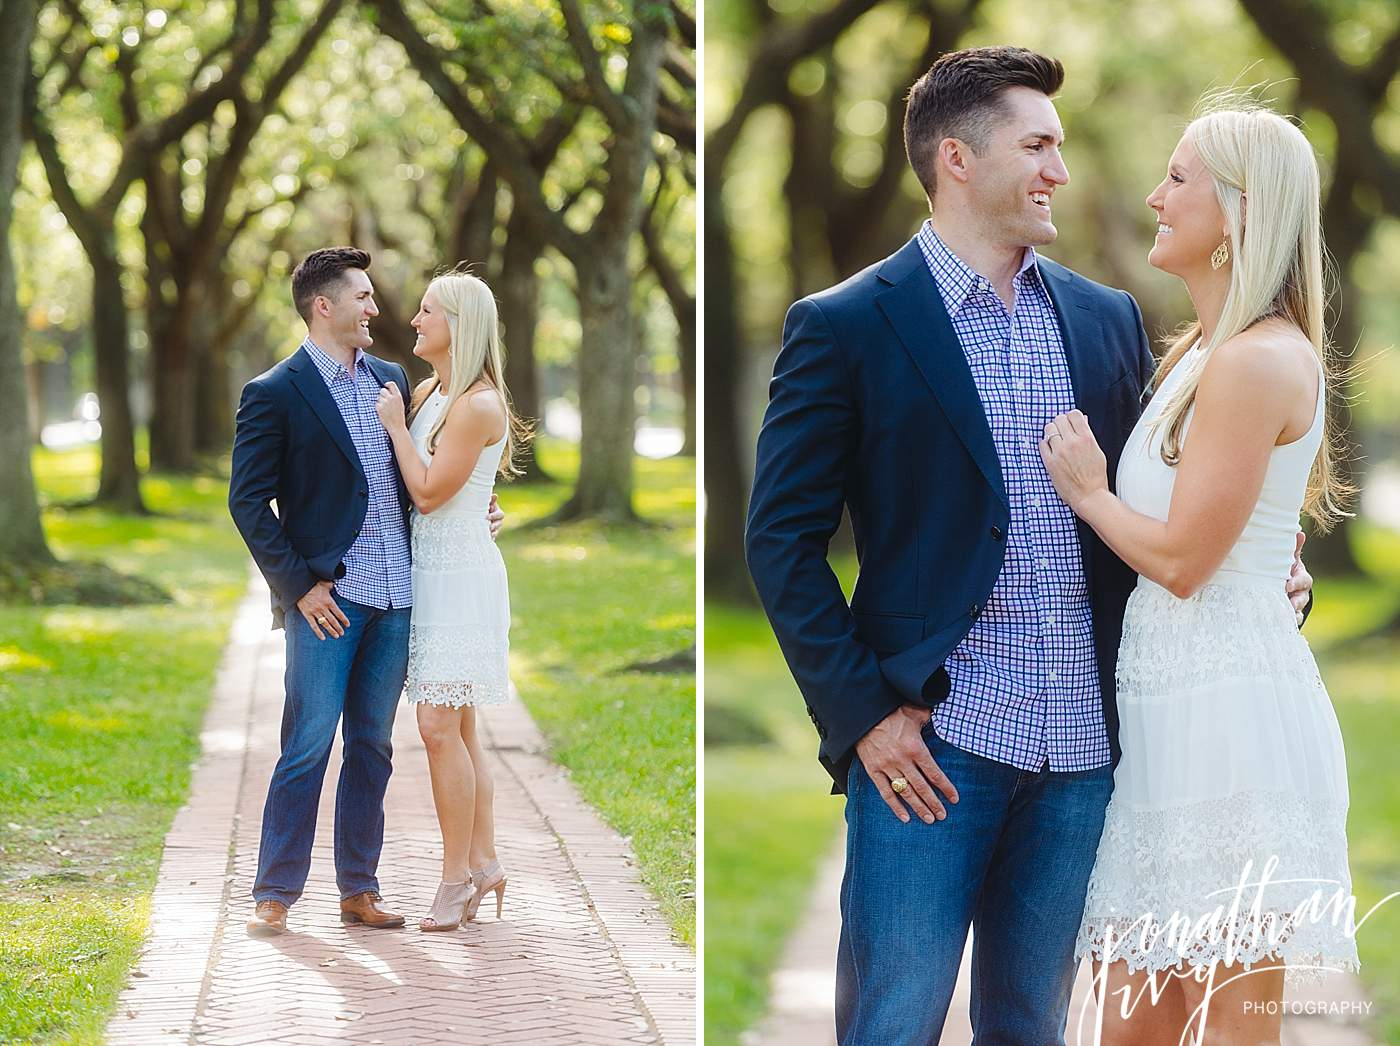 What To Wear For Engagement Photos Best Outfit Ideas